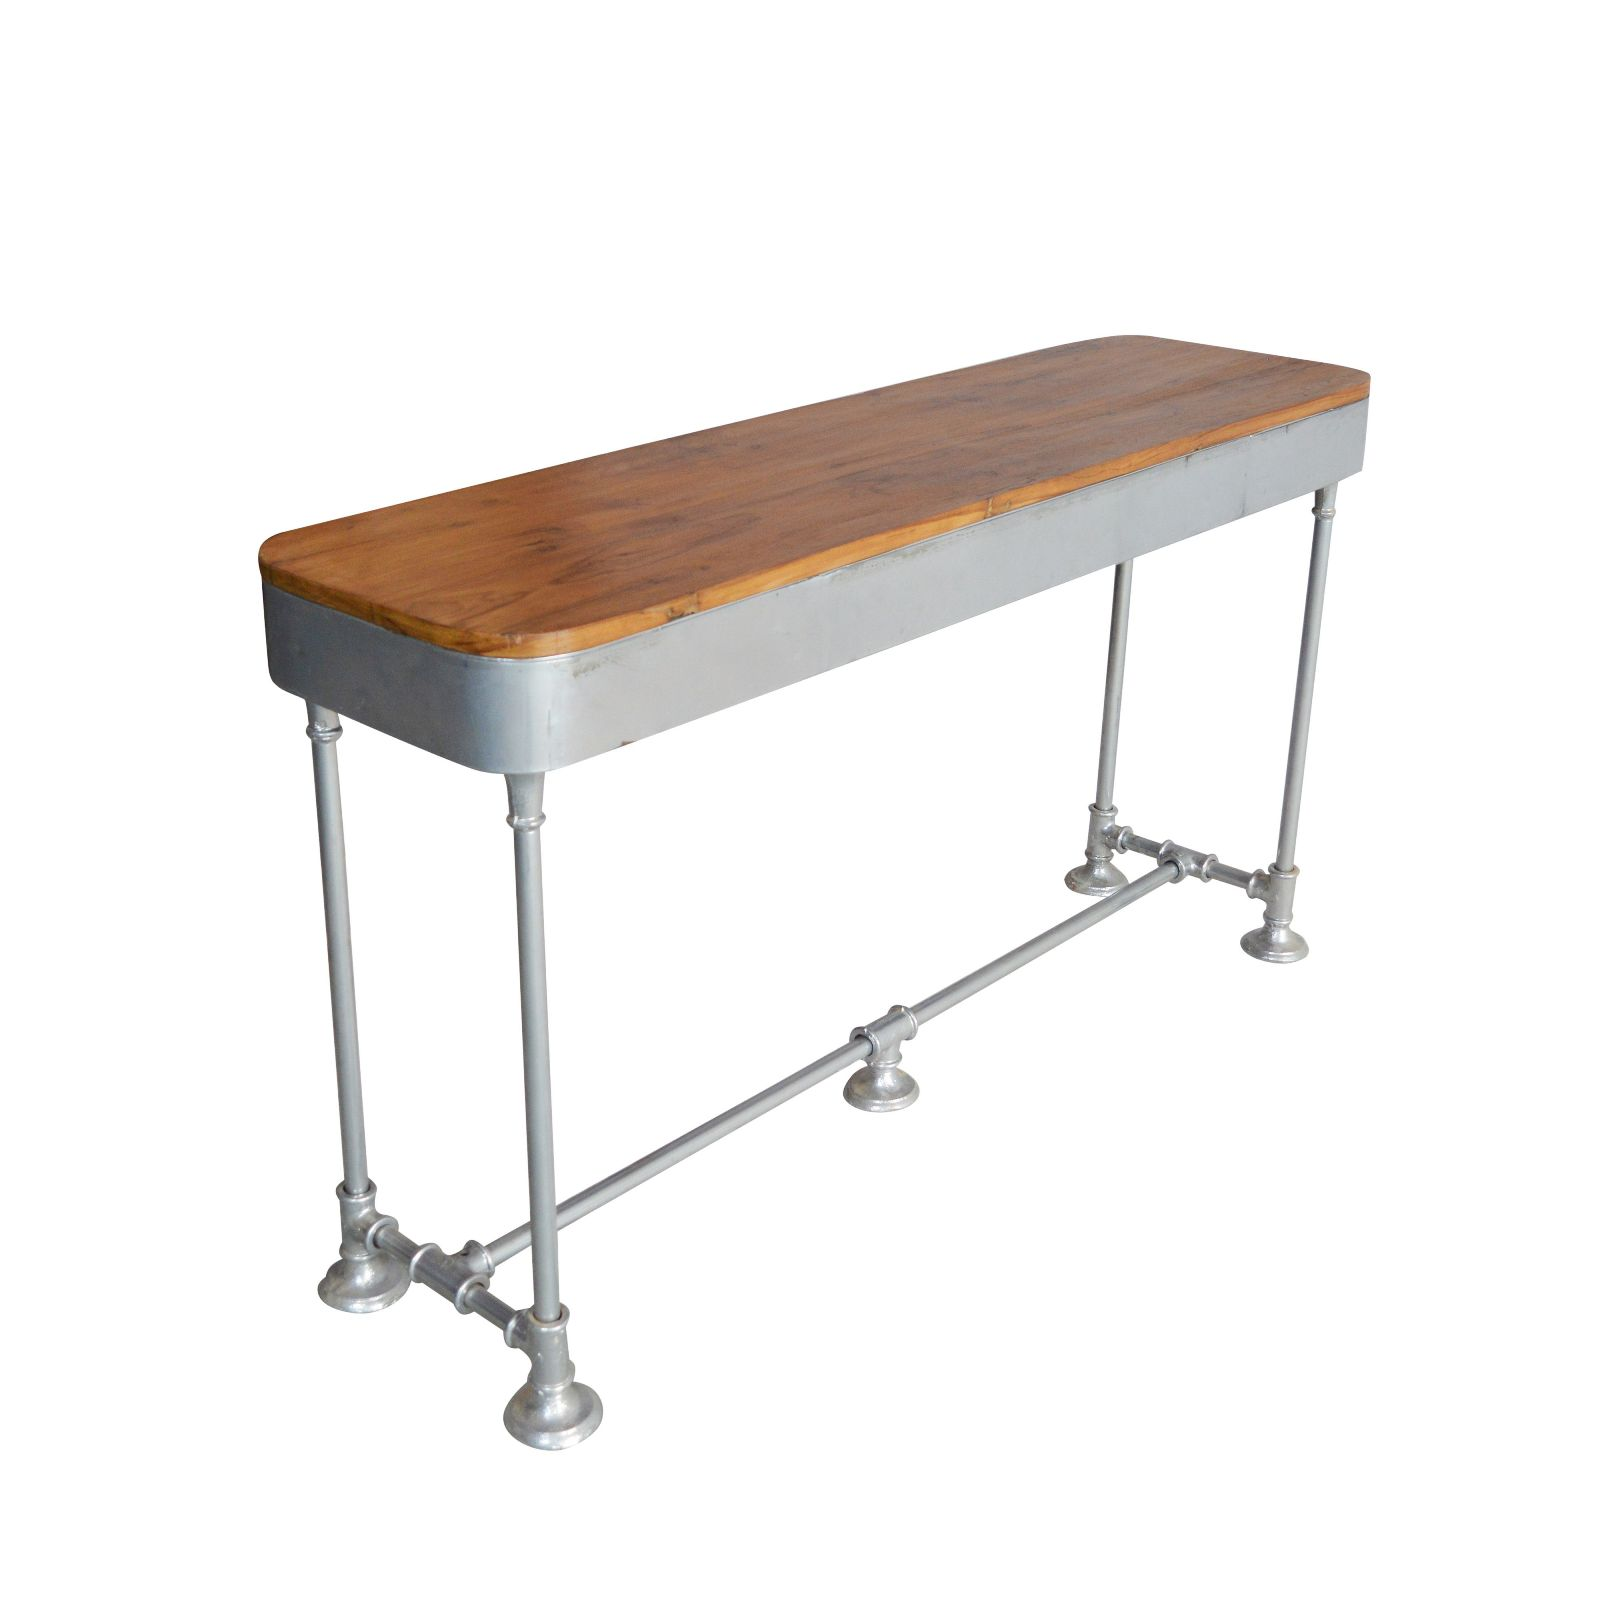 INDUSTRIAL CONSOLE TABLE TWO DRAWER TEAK TOP NATURAL FINISH